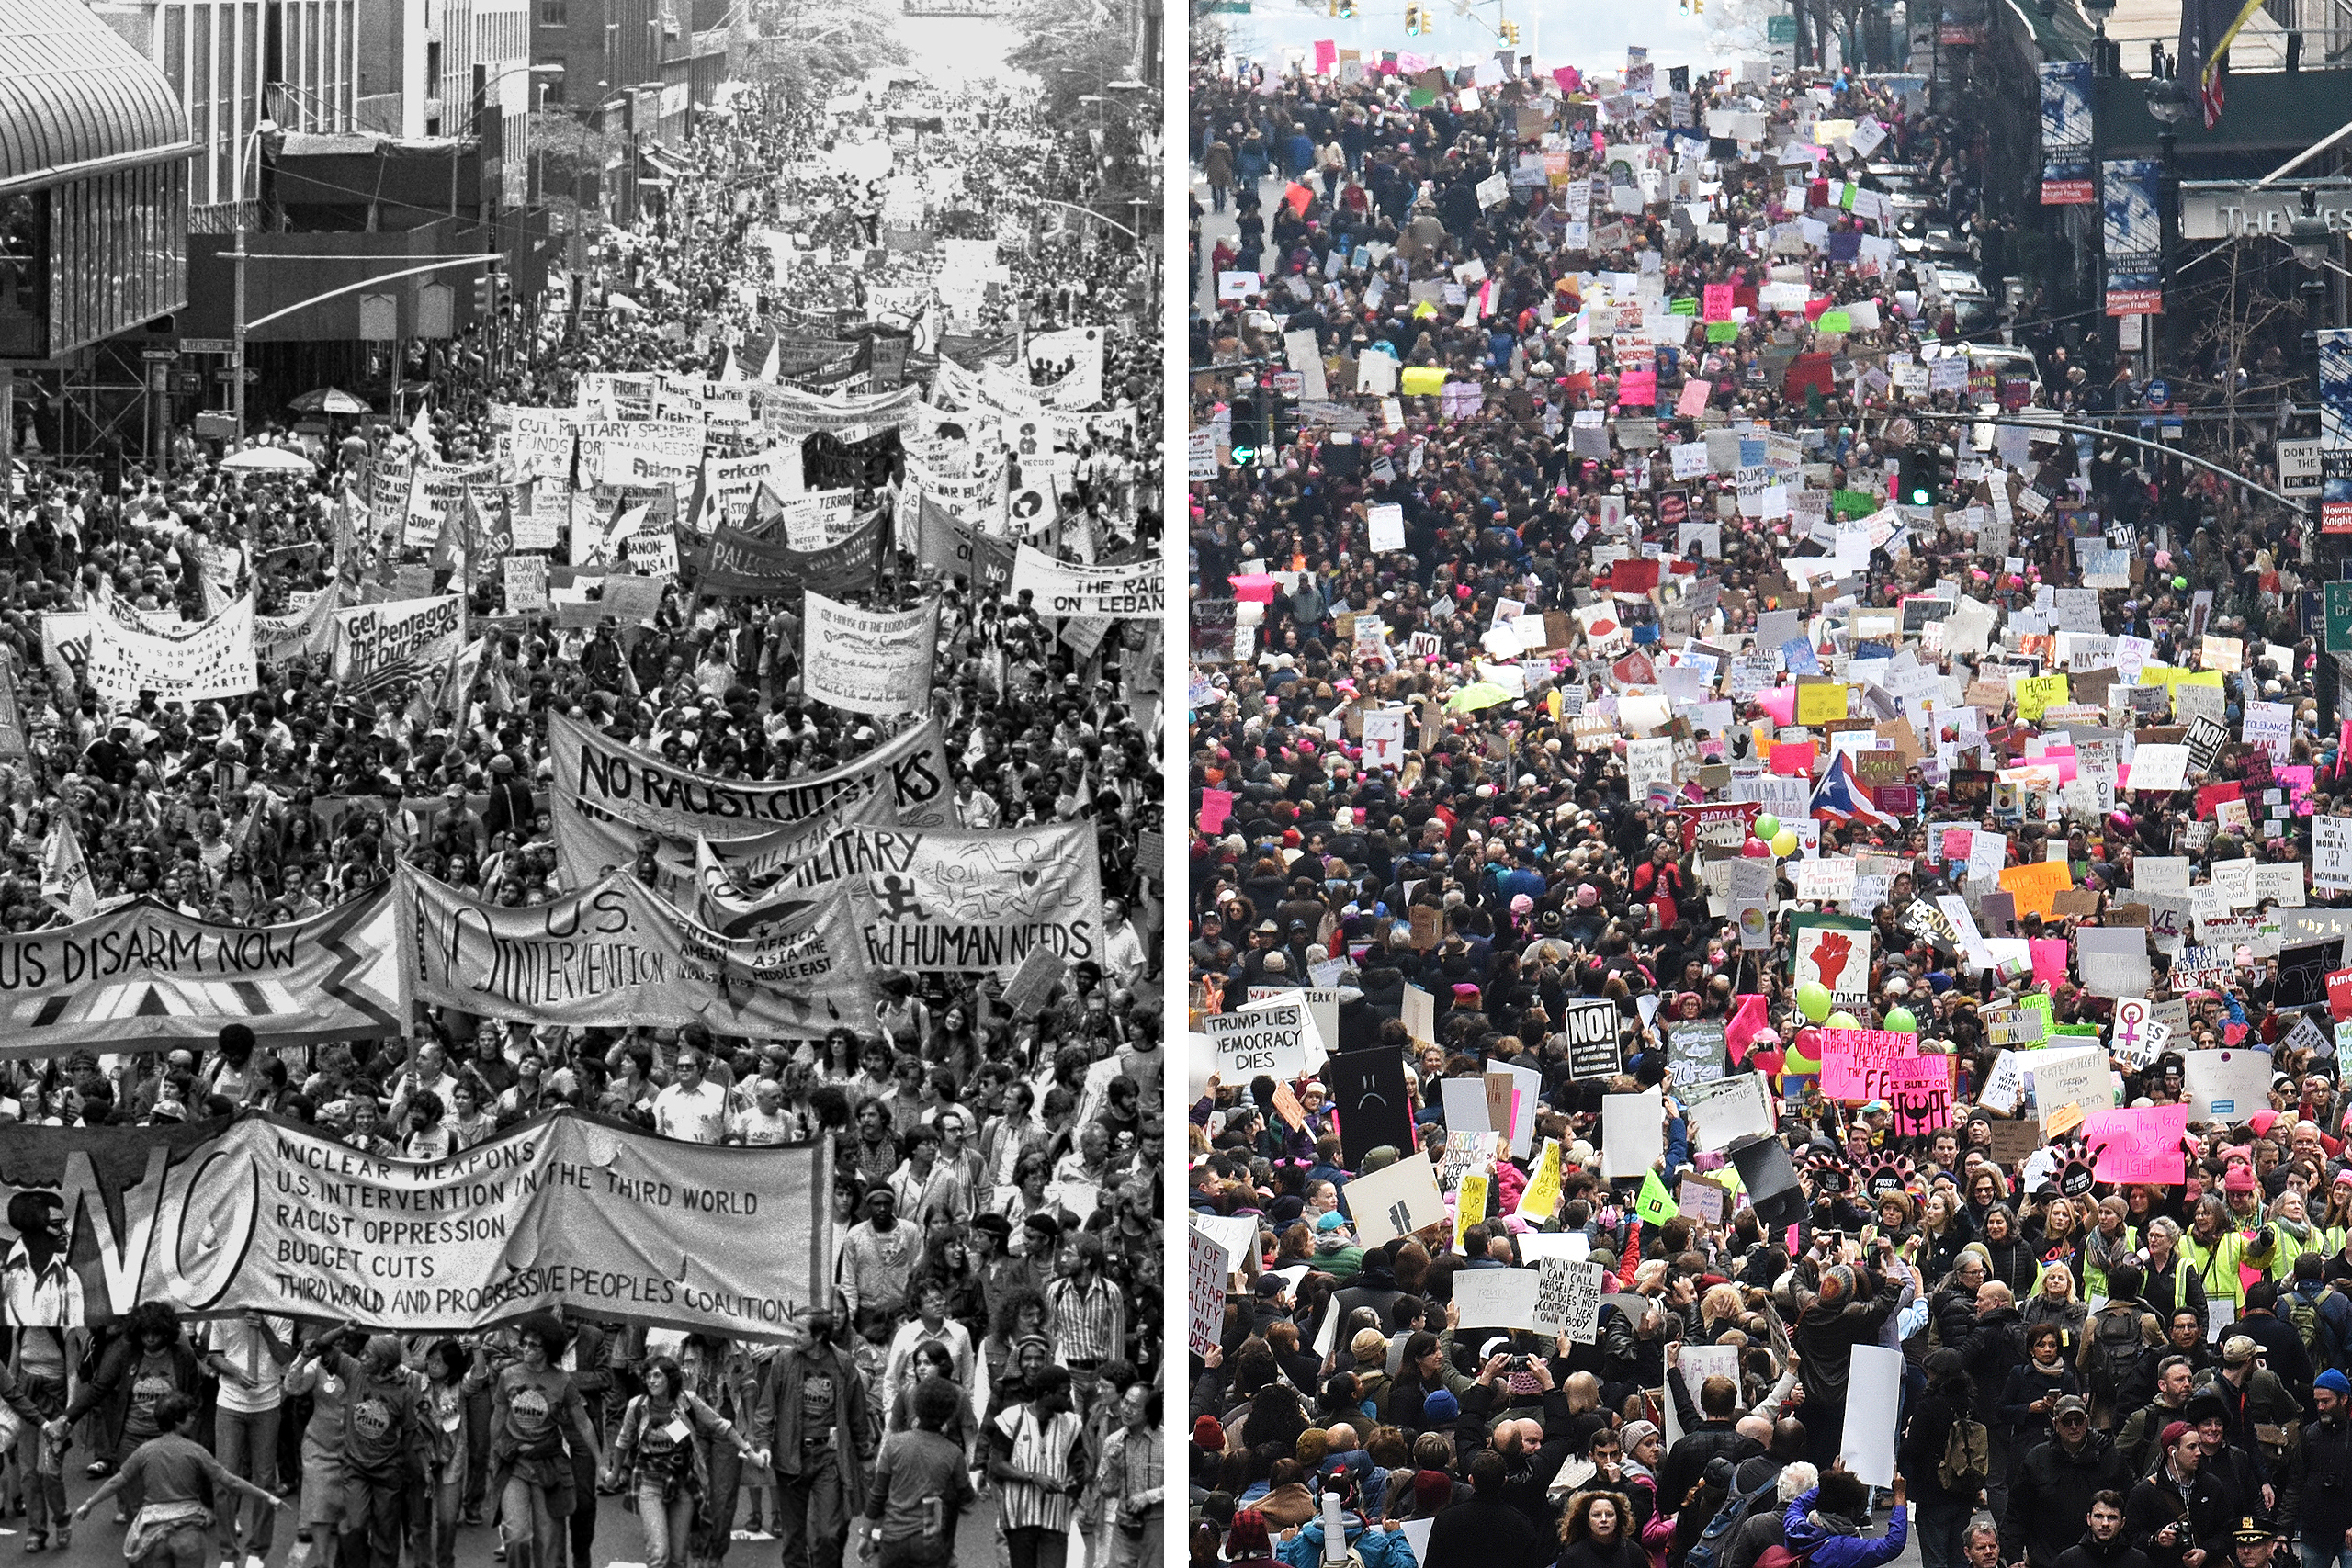 Left: Anti-nuke demonstration on 42nd St. in New York City on June 12, 1982; Right: Women's March on 42nd St. in New York City on Jan. 21, 2017.